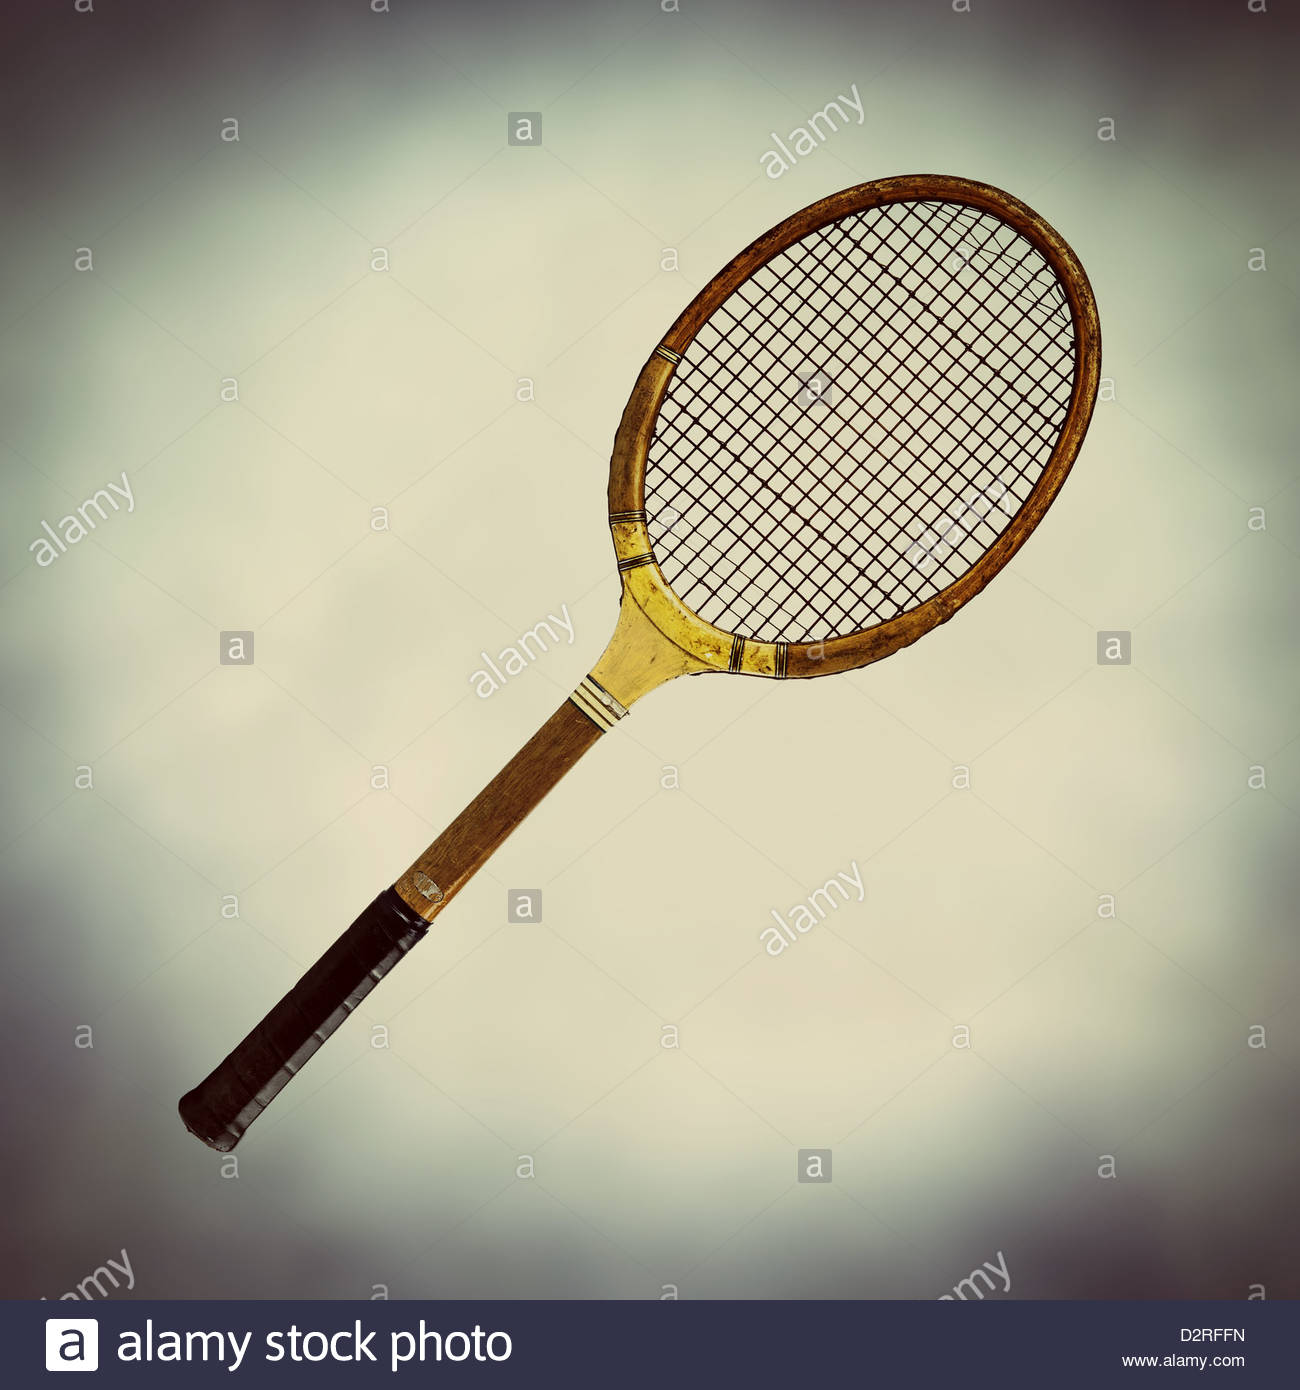 Raquette de tennis en bois à l'ancienne Photo Stock